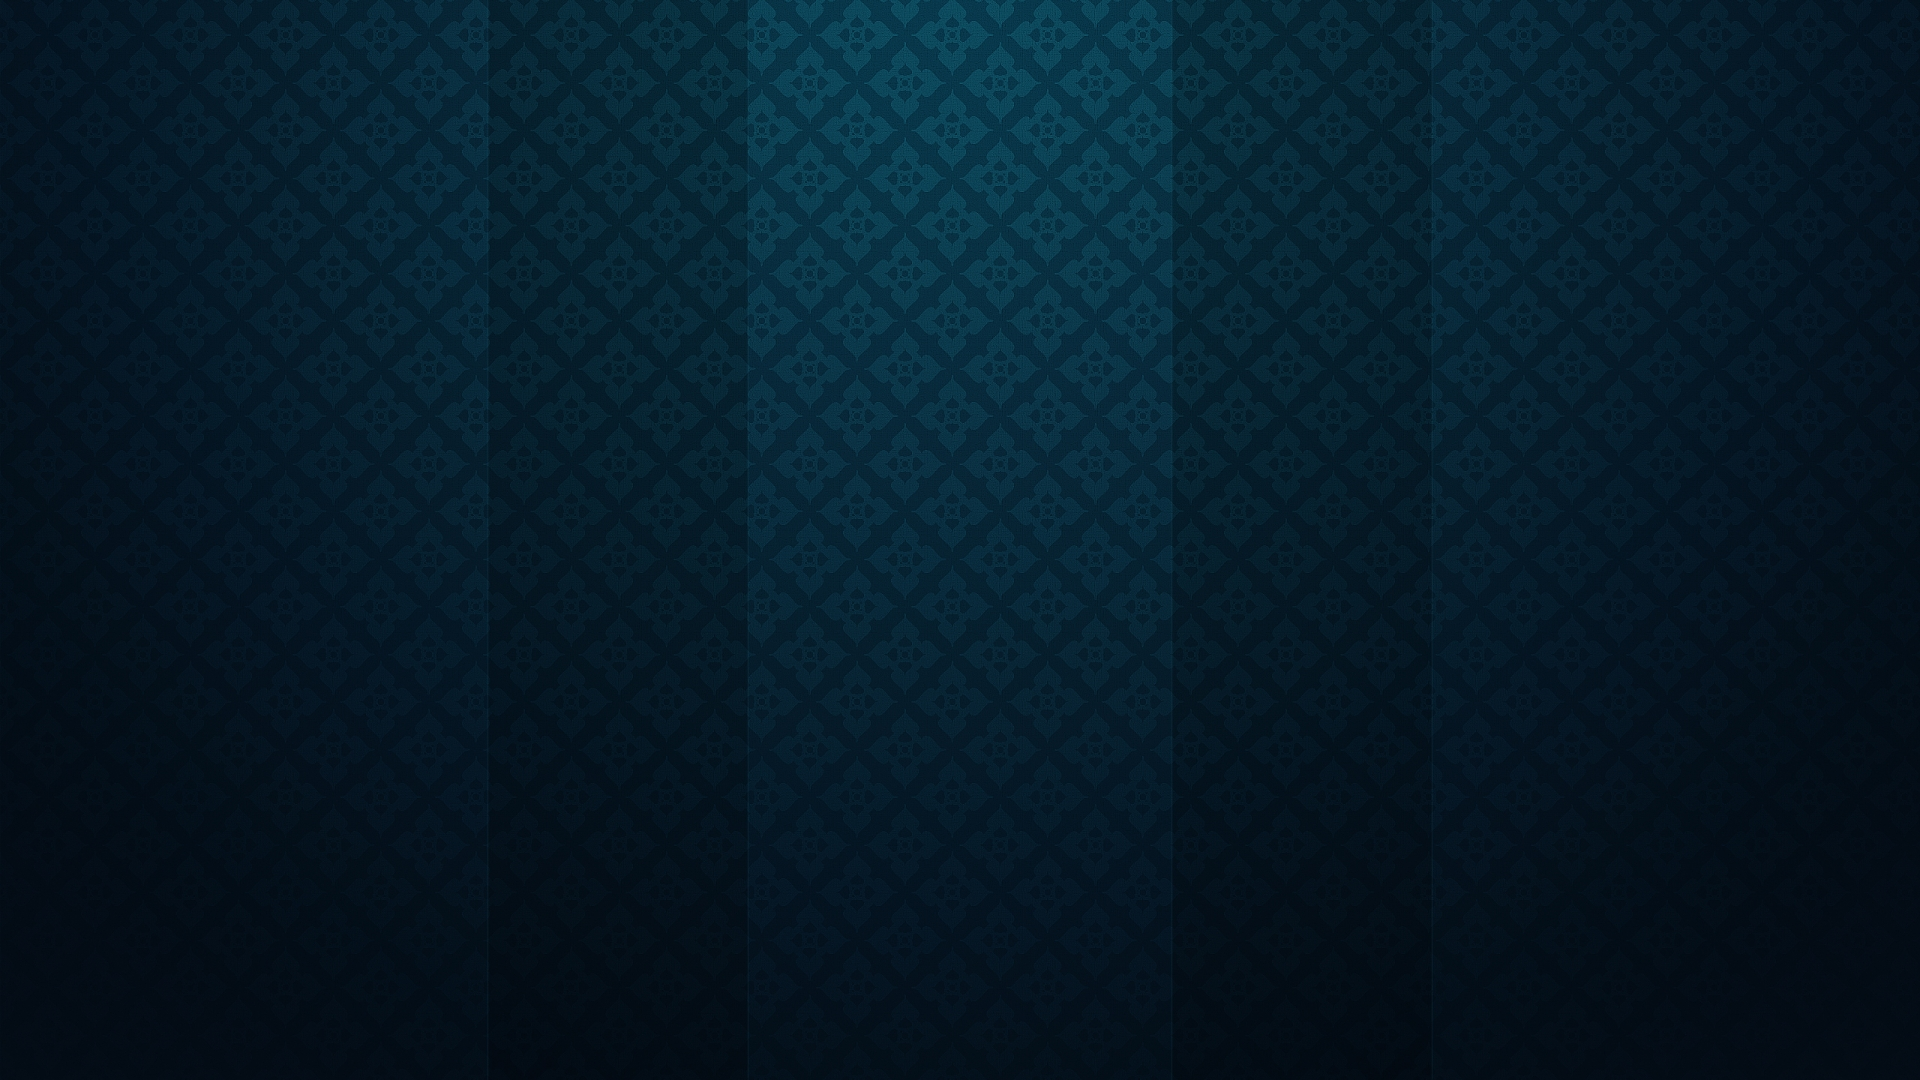 Diamond pattern wallpaper